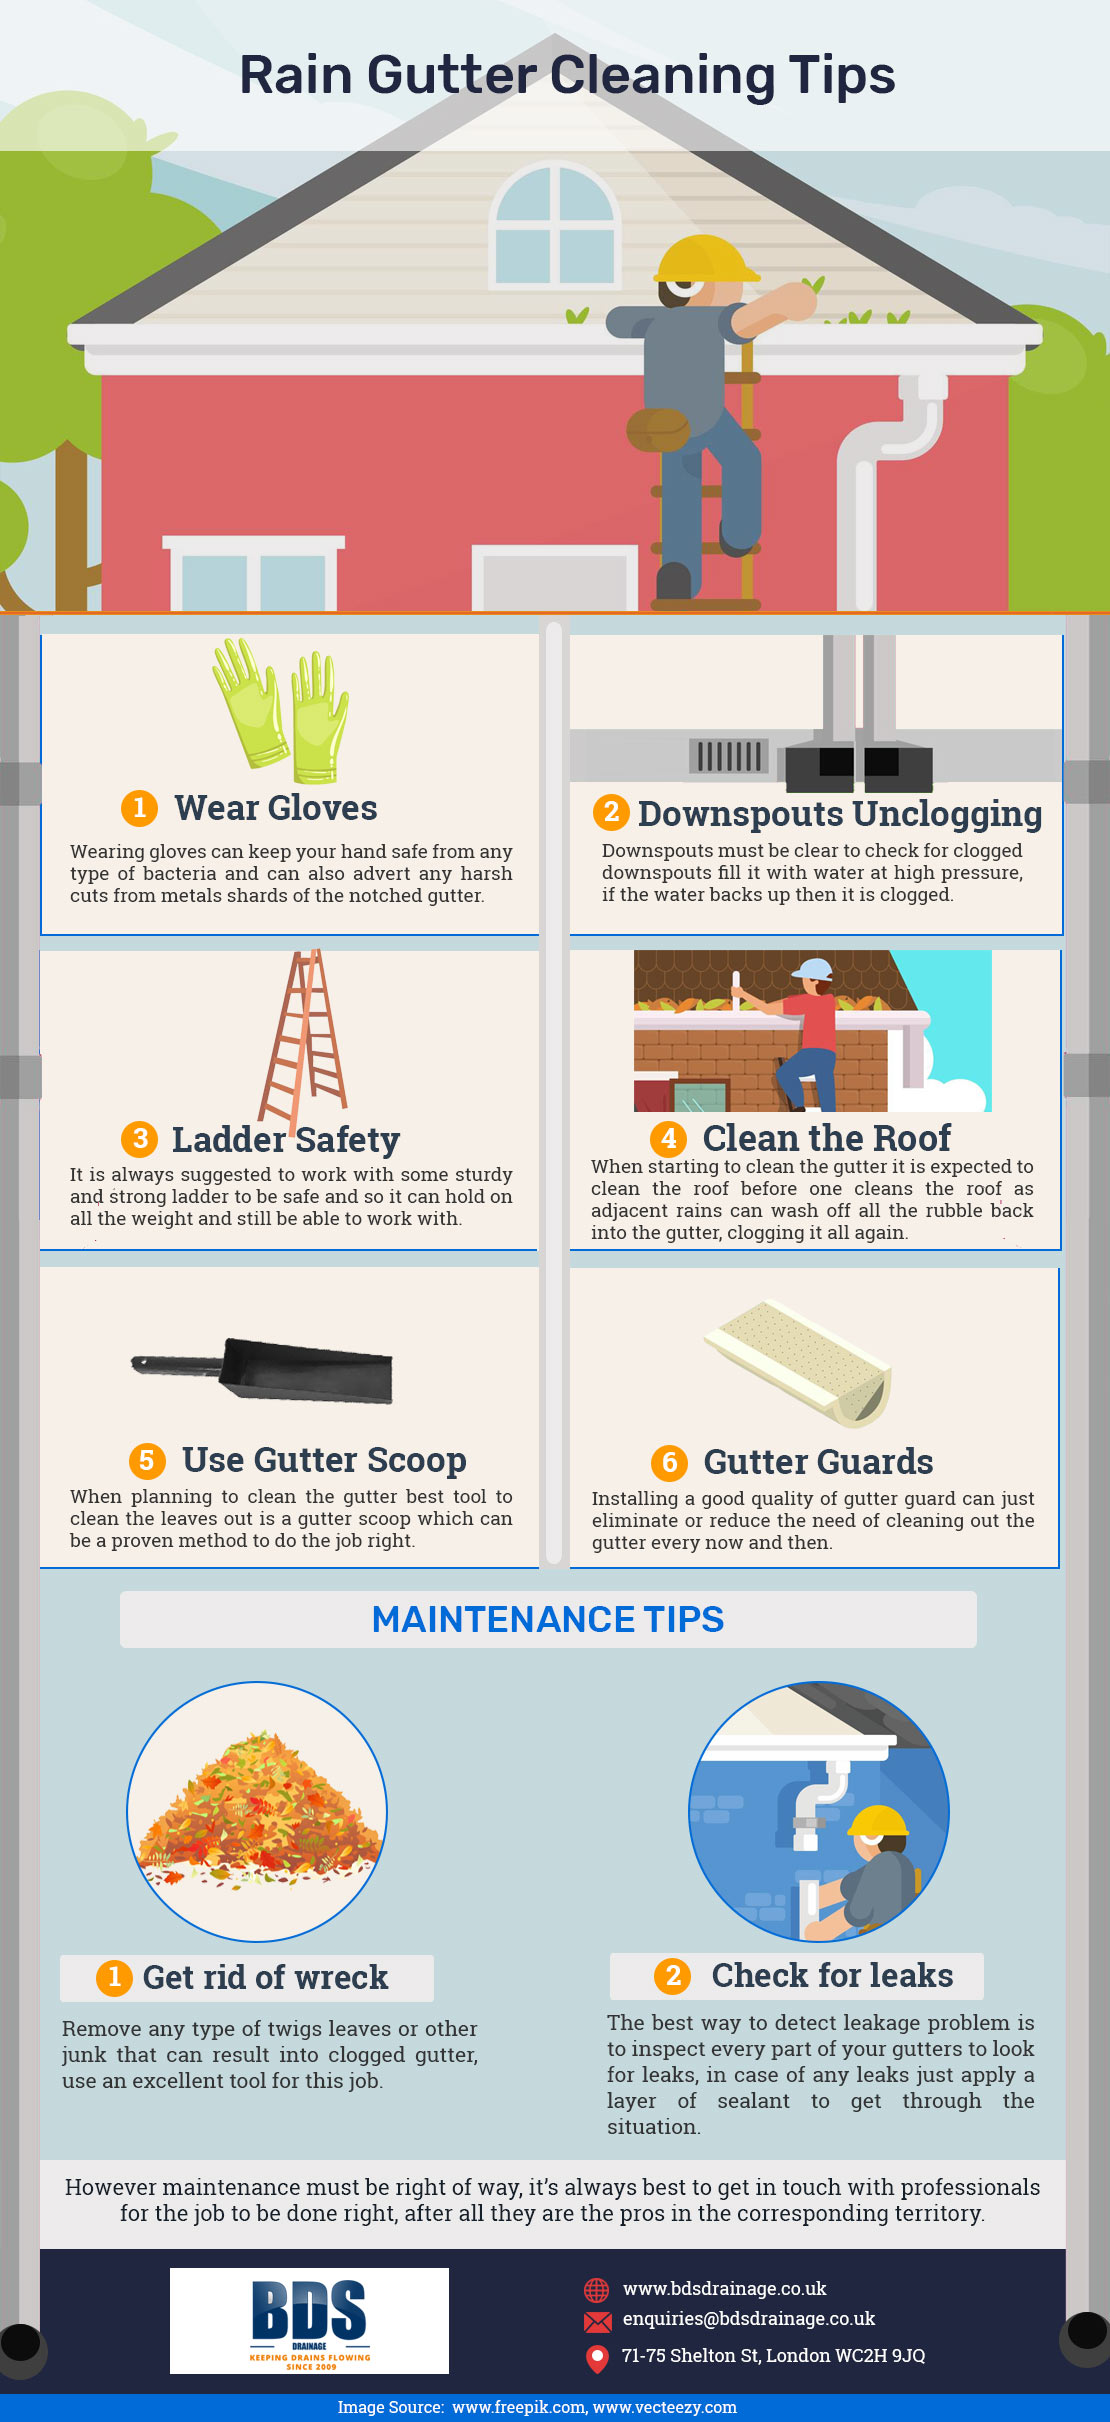 Rain Gutter Cleaning Tips